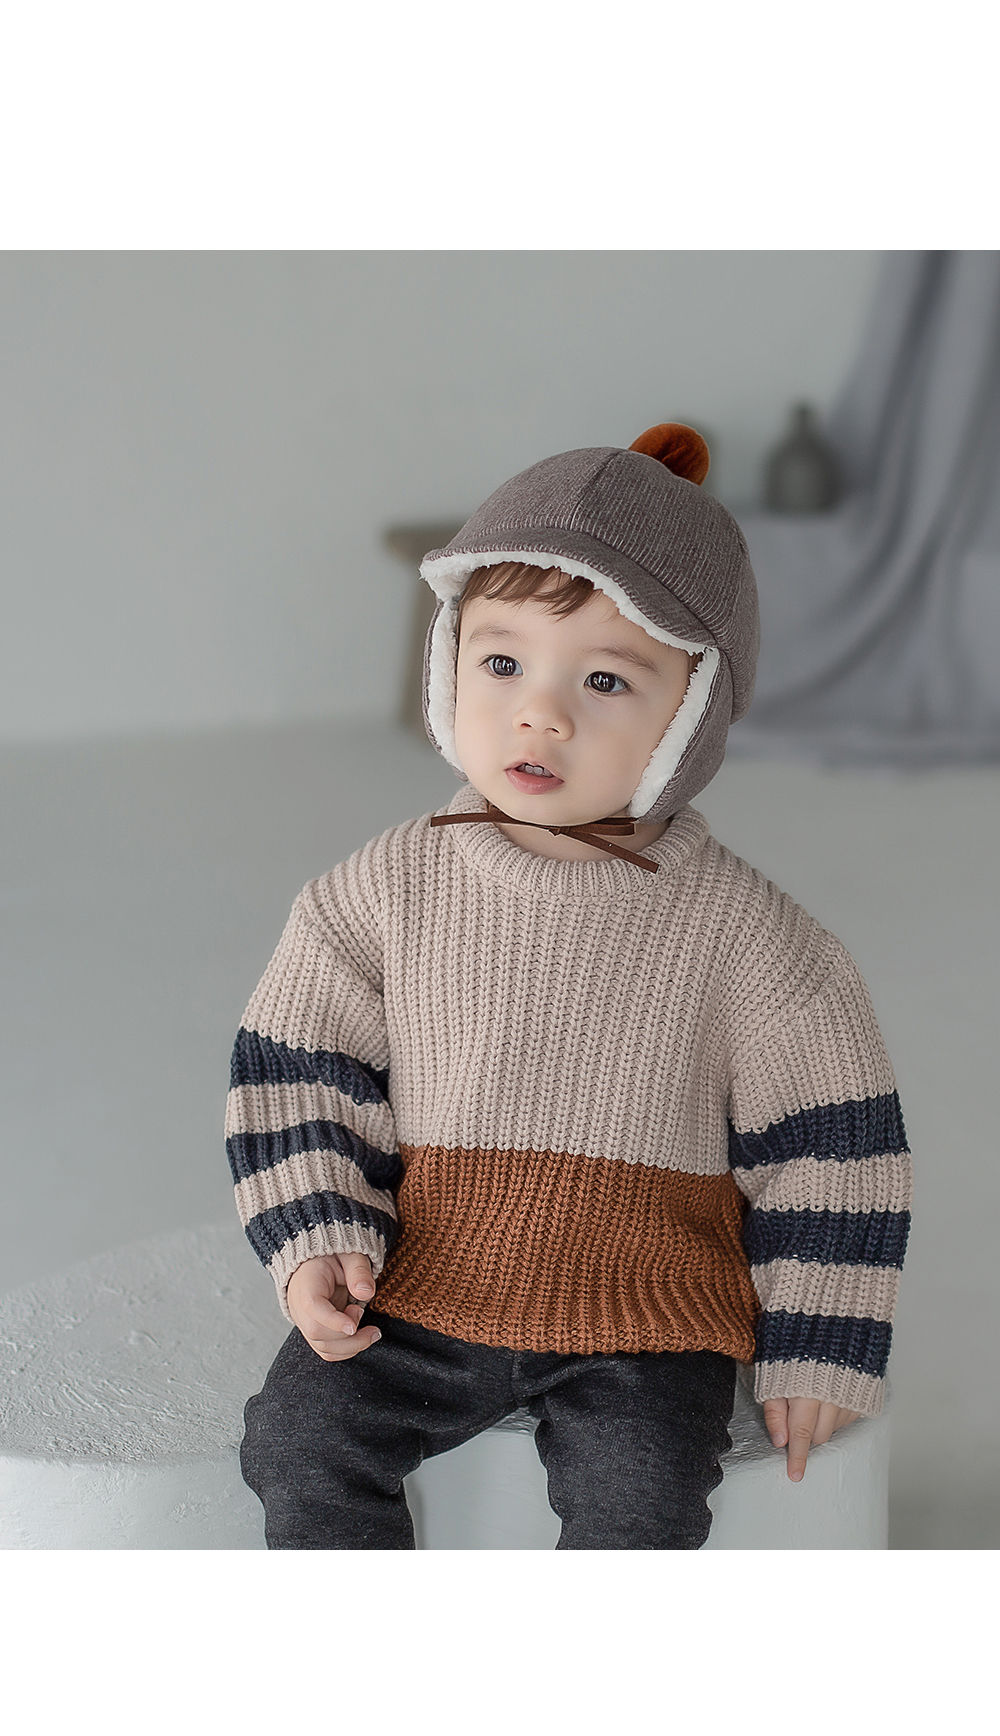 HAPPY PRINCE - Korean Children Fashion - #Kfashion4kids - Joseph Knit Baby Knit Pullover